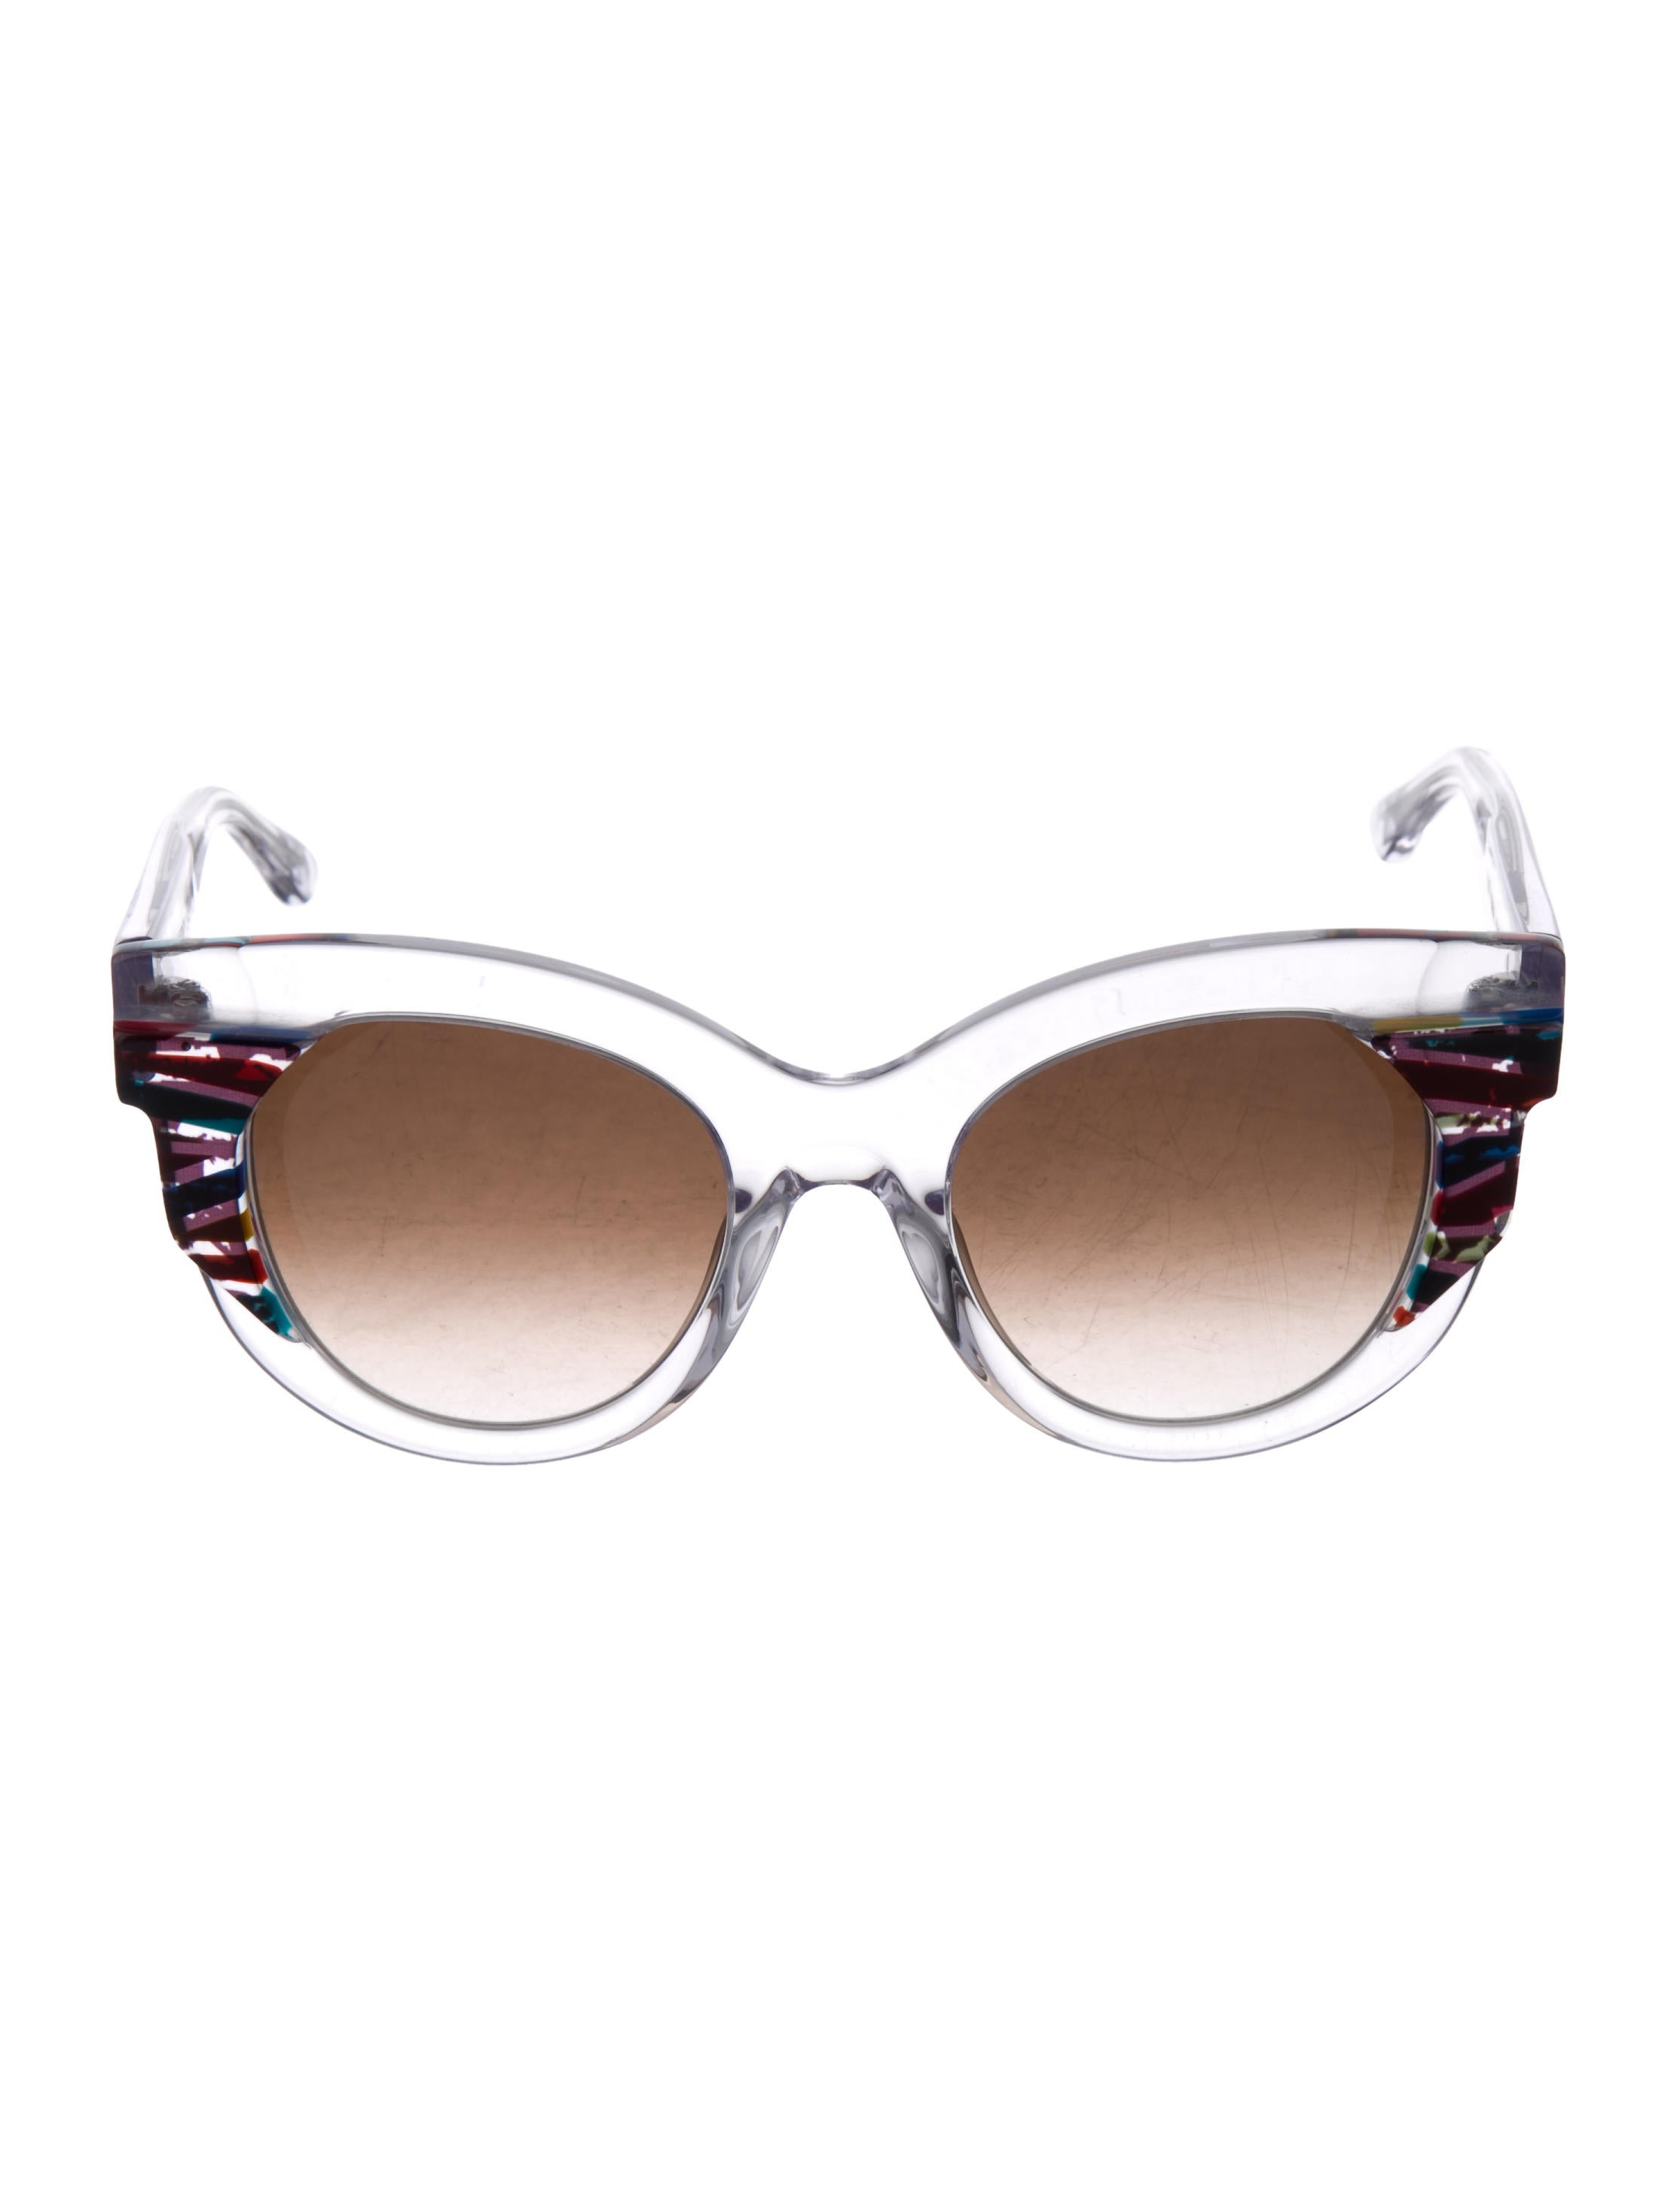 11e6f066807 Thierry Lasry Clear Round Sunglasses w  Tags - Accessories ...